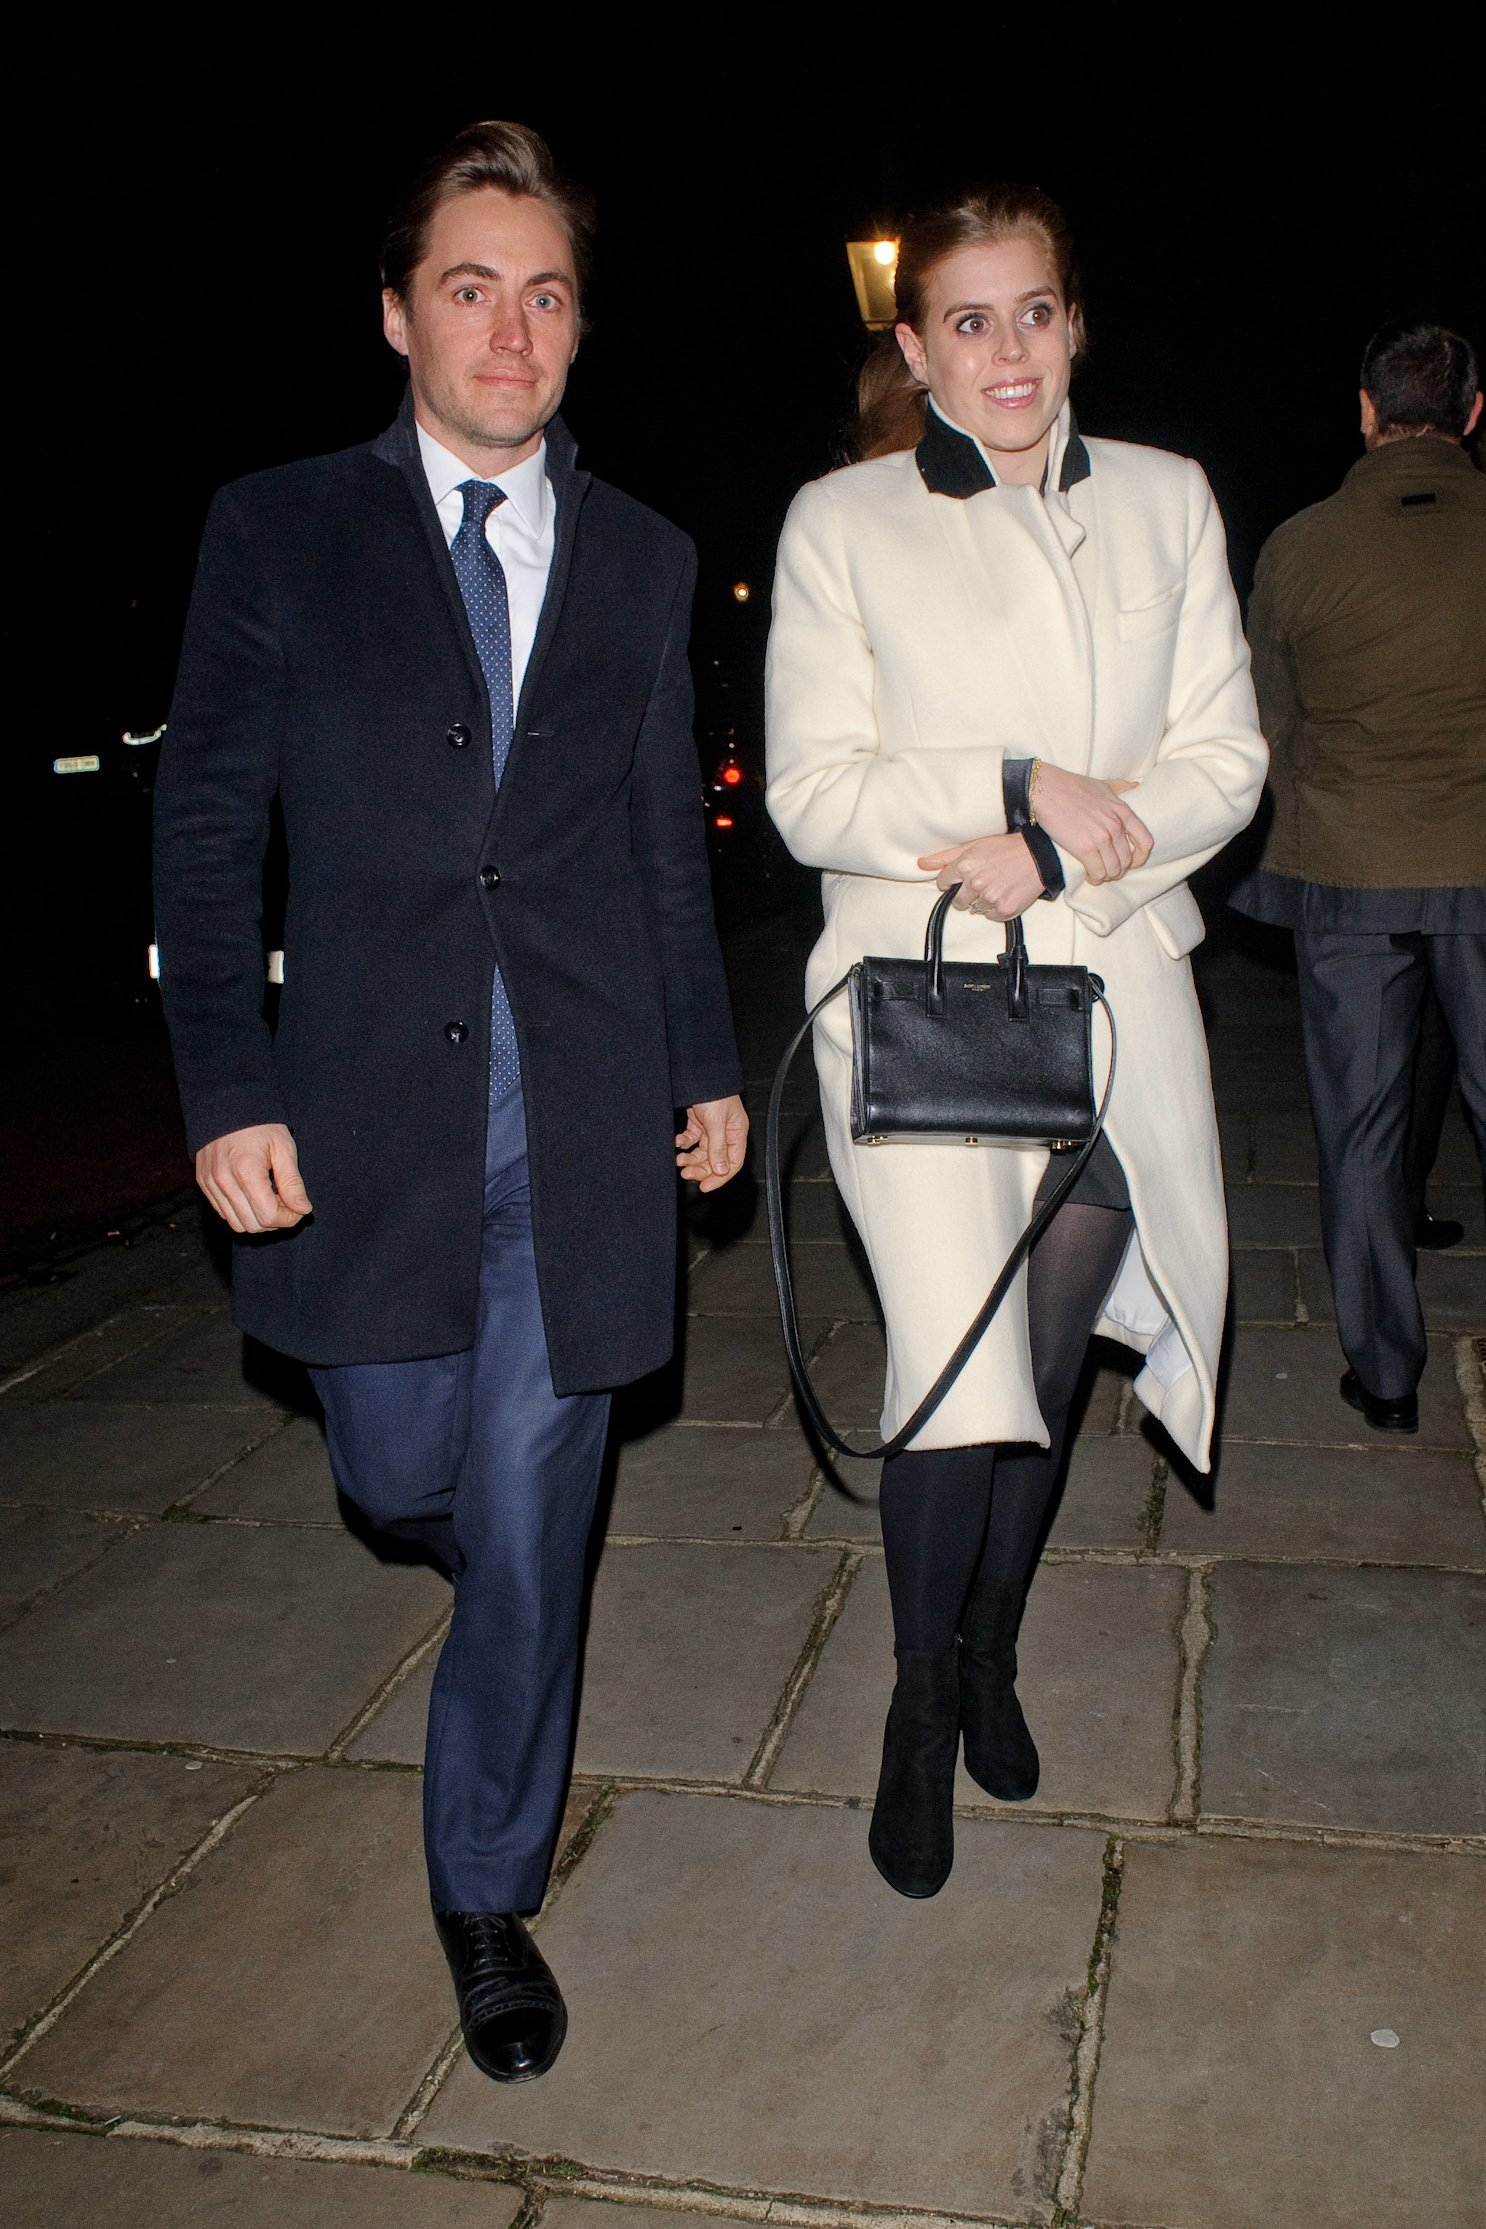 Princess Beatrice (R) and Edoardo Mapelli Mozzi seen attending Evgeny Lebedev's Christmas Party at a private North London residence on December 13, 2019 | Photo: Getty Images